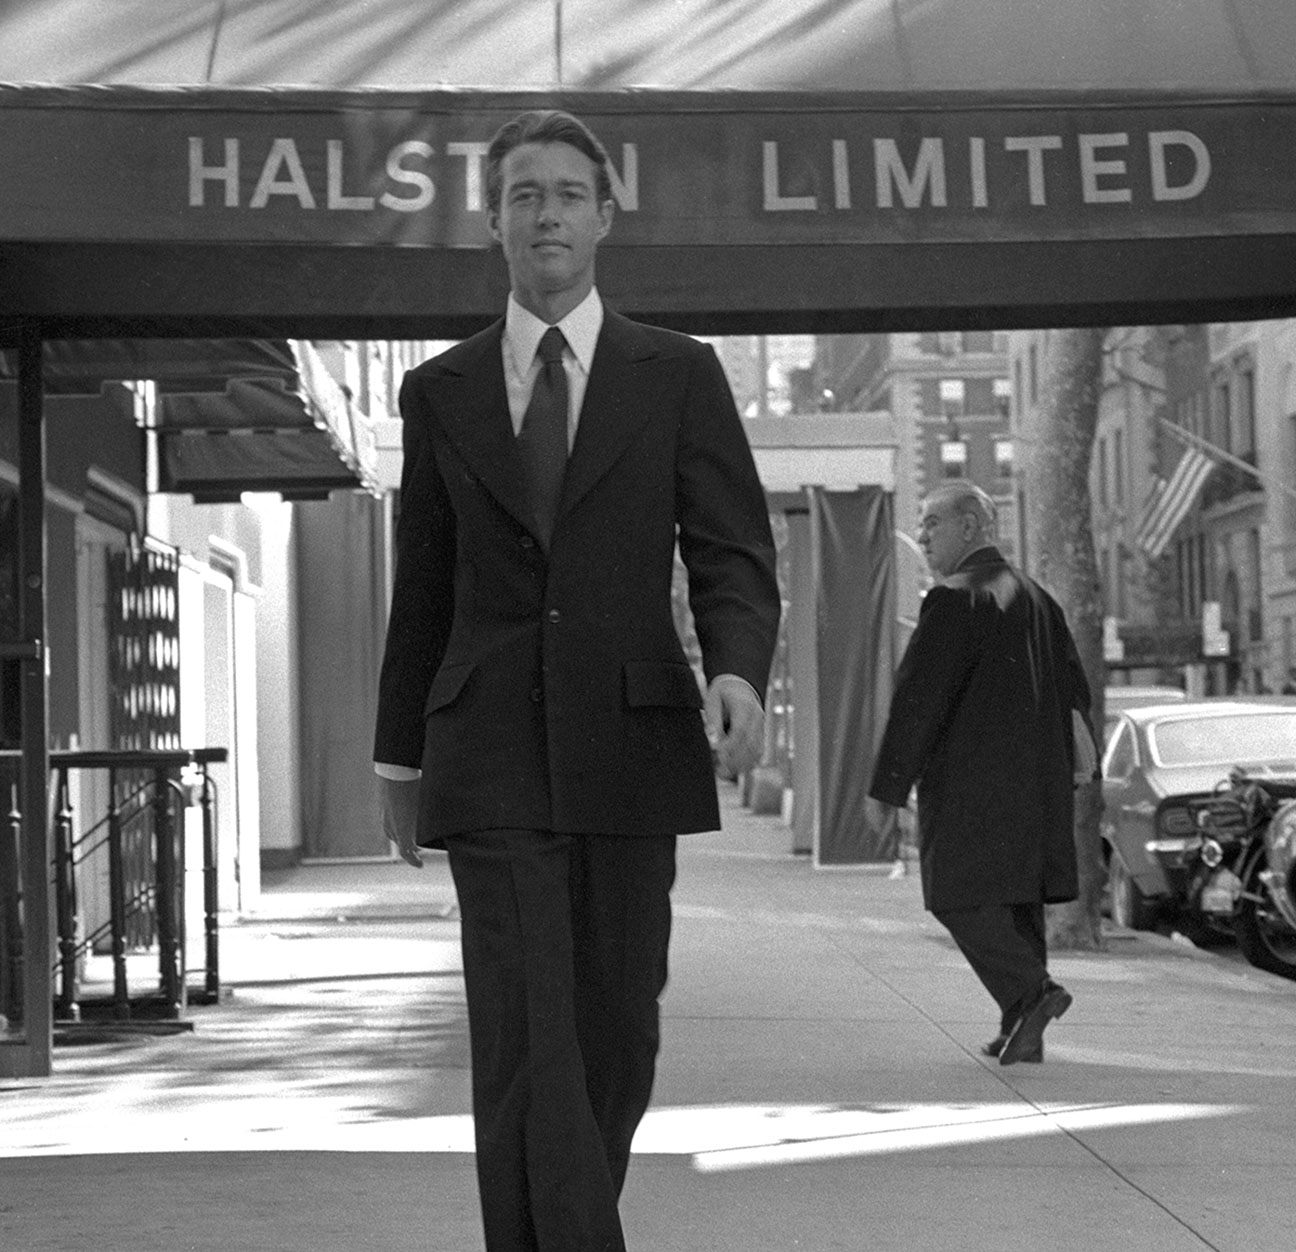 HALSTON )2019) documentary film opens in LA May 31 and debut on CNN broadcast debut in 2019